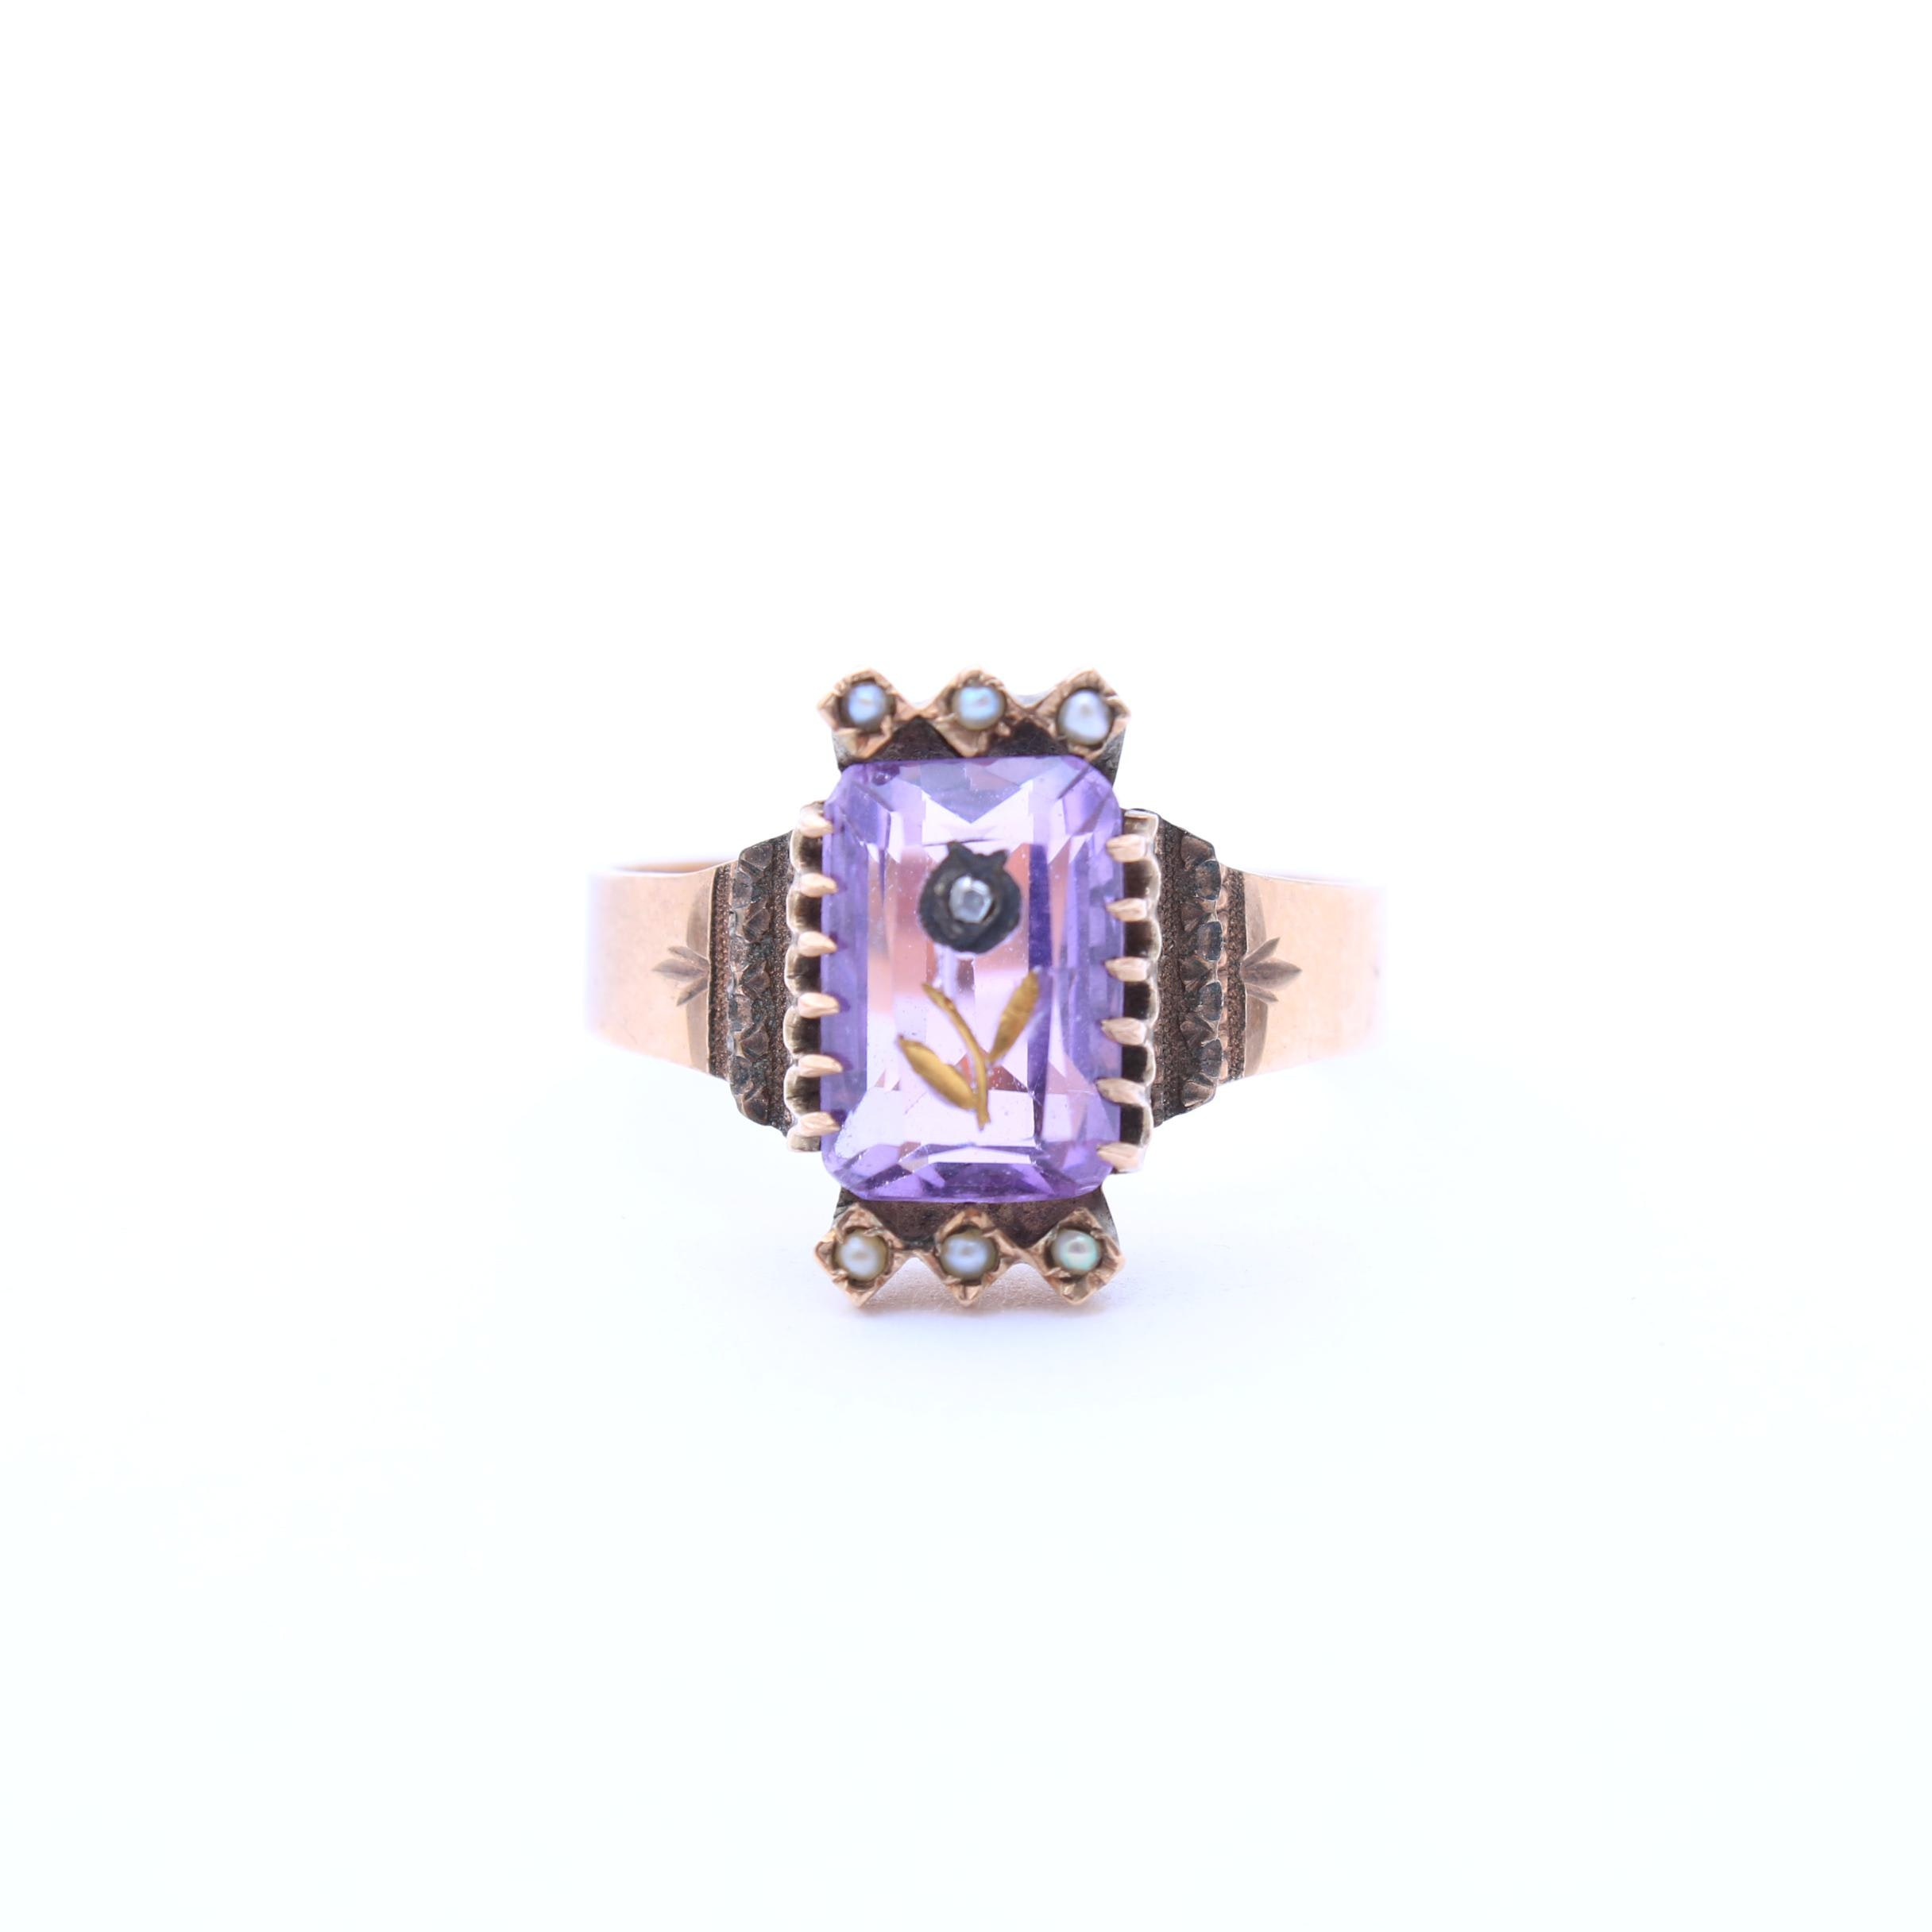 10K Yellow Gold Amethyst, Seed Pearl, and Diamond Ring